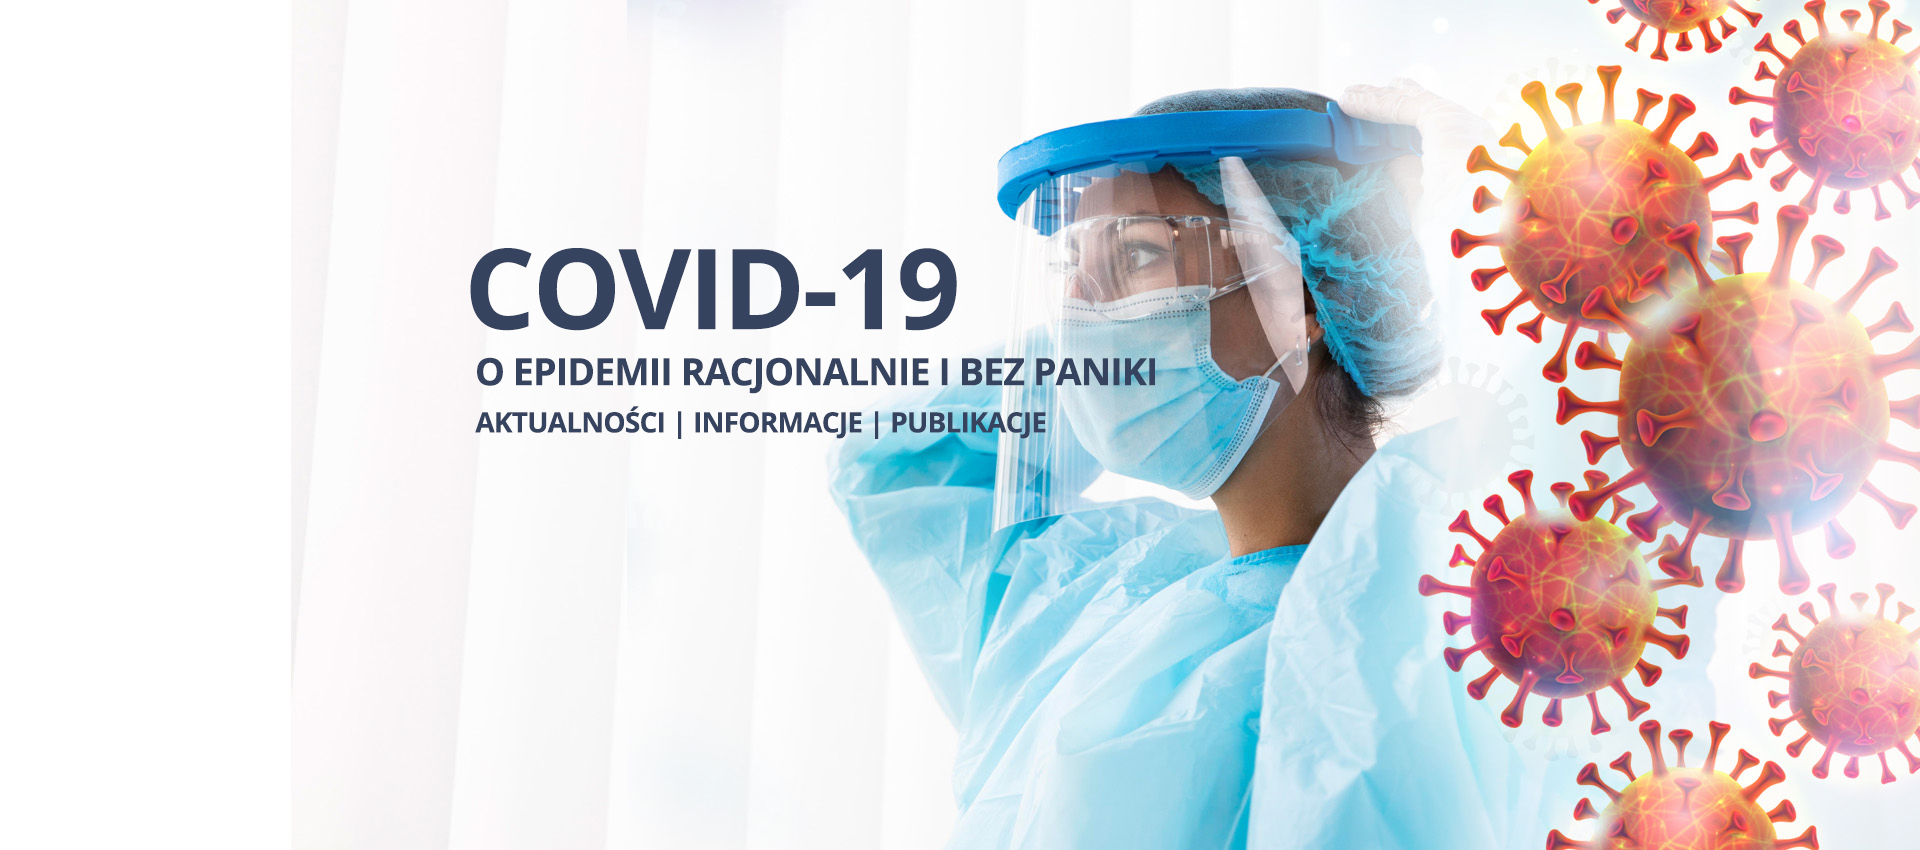 Rekomendacje w oparciu o SSC: Guidelines on the Management of Critically Ill Adults with Coronavirus Disease 2019 (COVID-19)